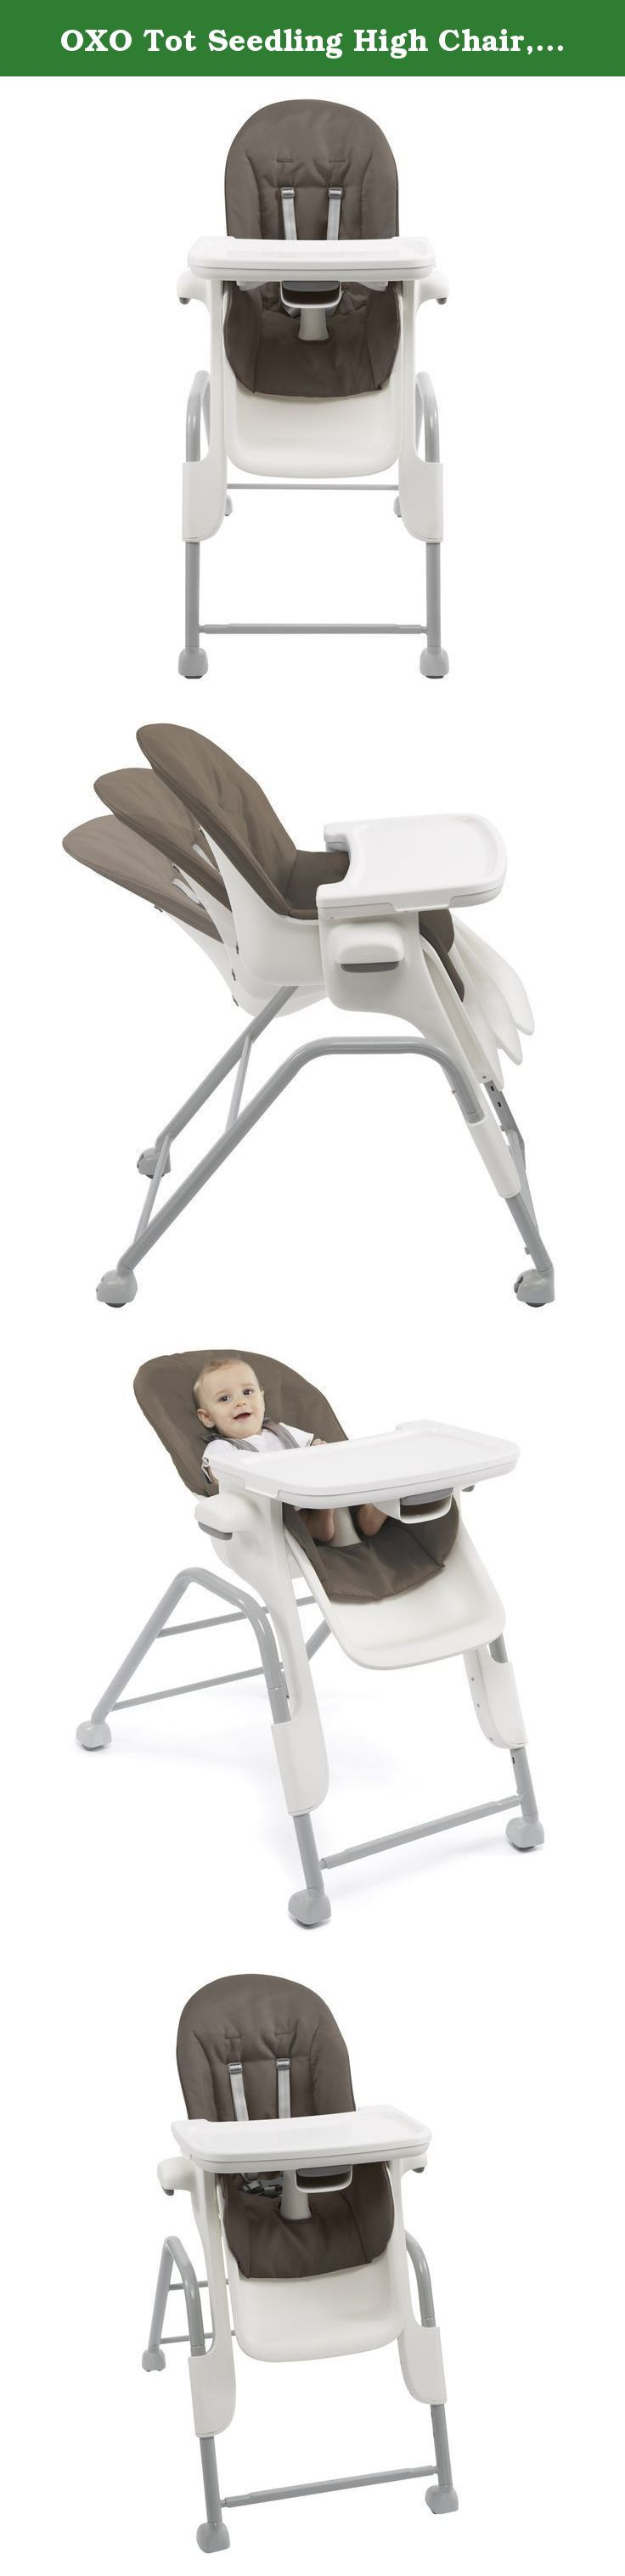 Delightful OXO Tot Seedling High Chair, Mocha. The Seedling Chair Will Stay With Your  Child From 4 Months To 3 Years, Adjusting And Growing With Them. The Conu2026 Gallery